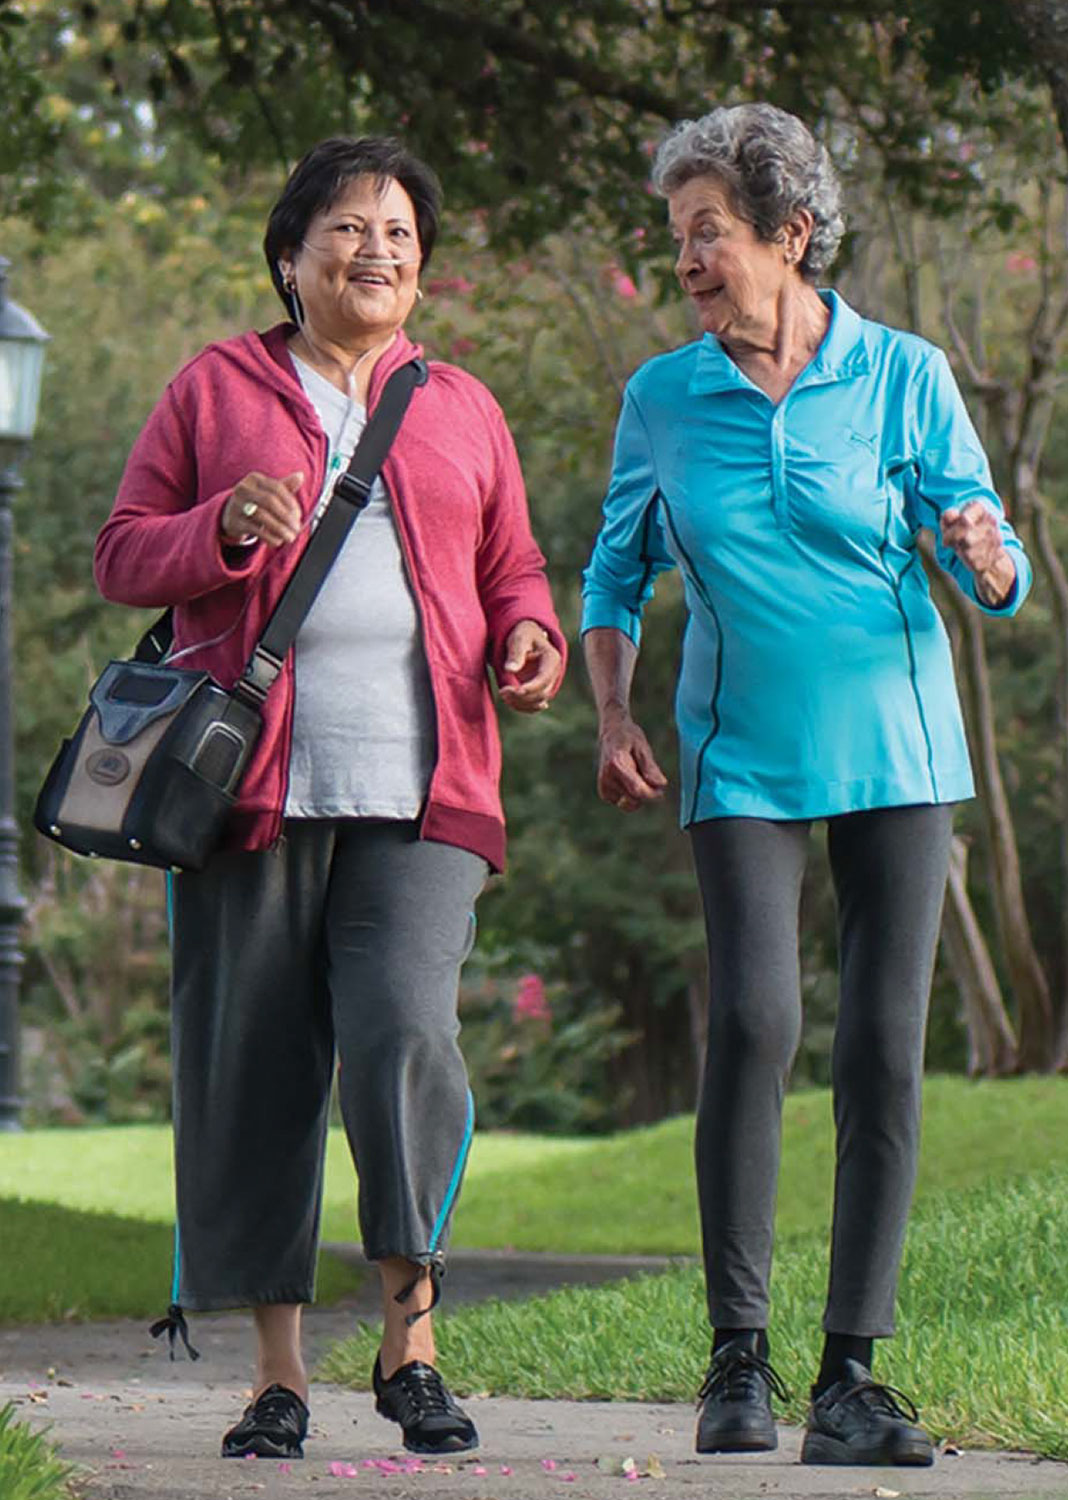 walking-with-the-lifechoice-activox.jpg